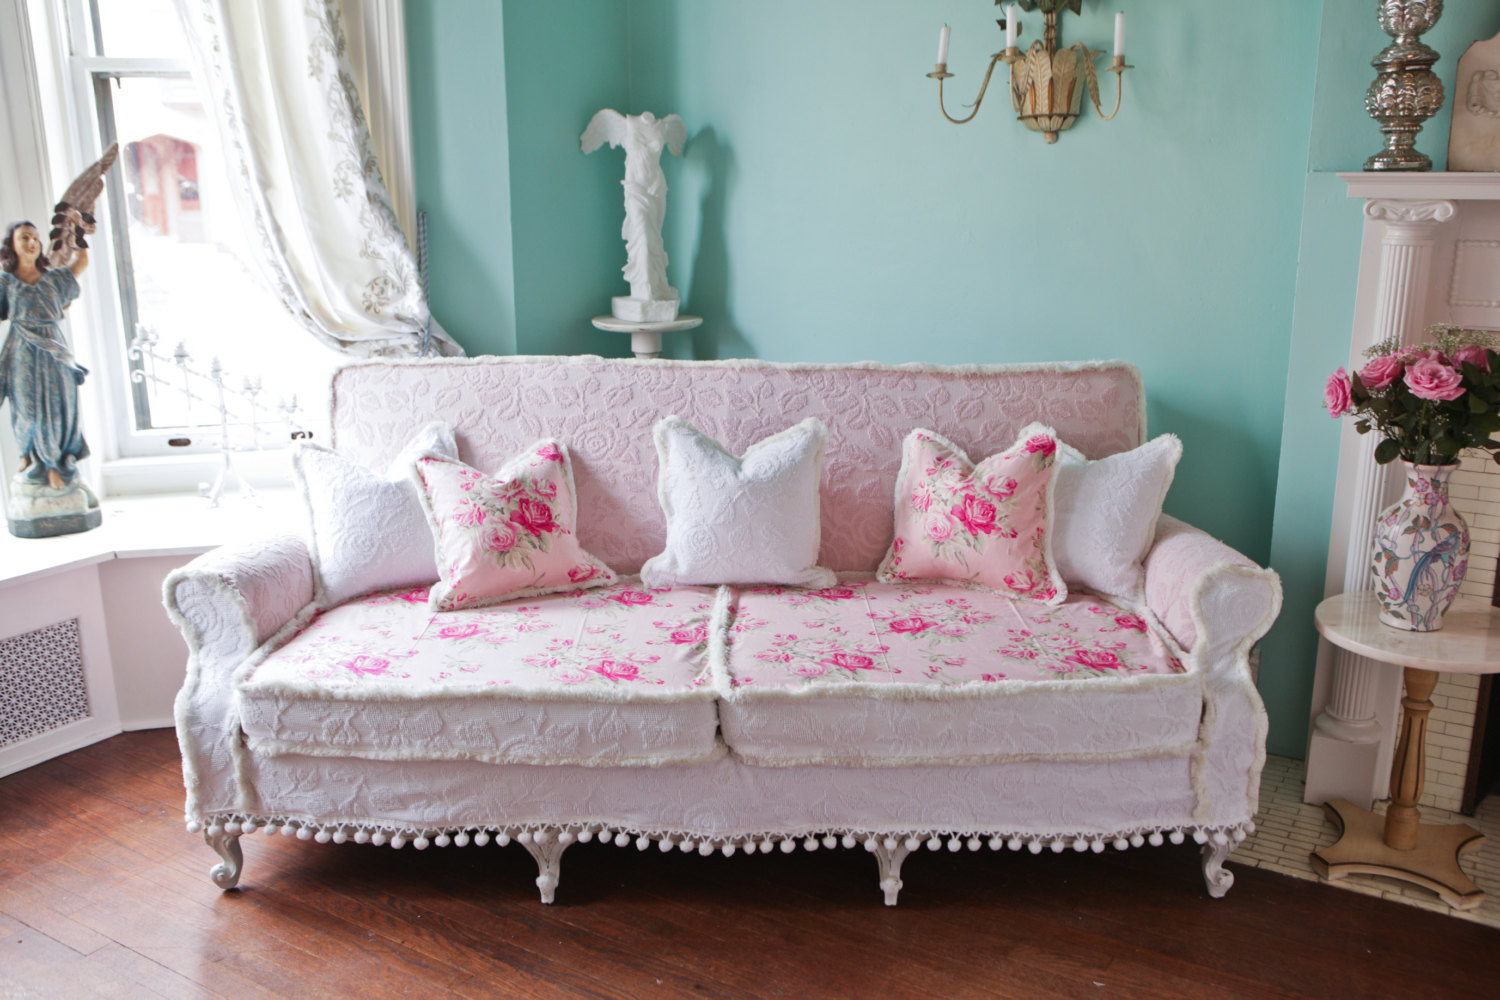 Best ideas about Shabby Chic Loveseat . Save or Pin shabby chic couch sofa cottage white pink antique vintage Now.